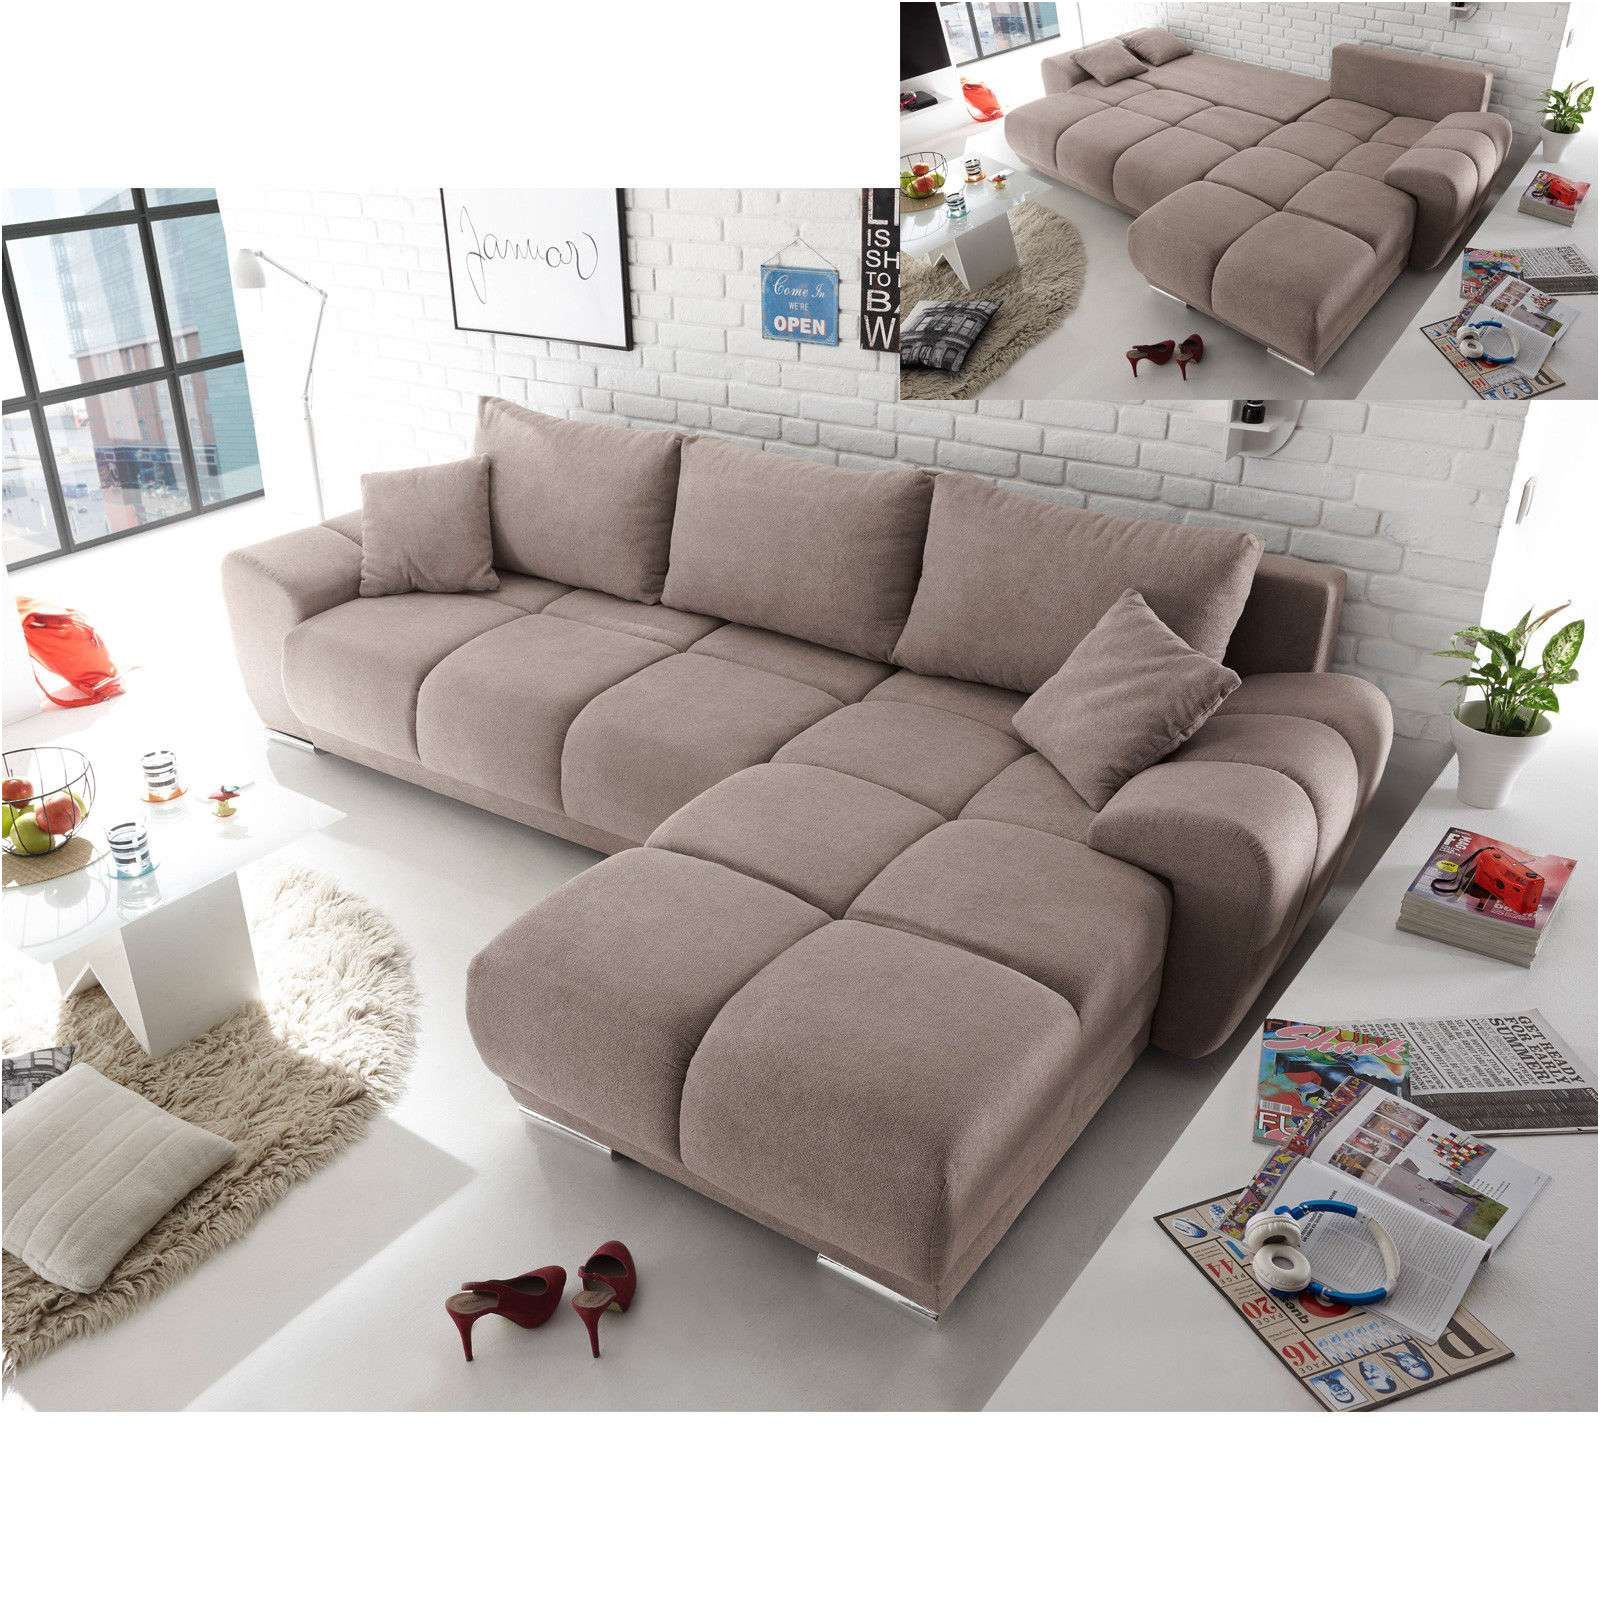 Ordinary Federkern Sofa Mit Schlaffunktion Couch Sofa Couch Home Decor